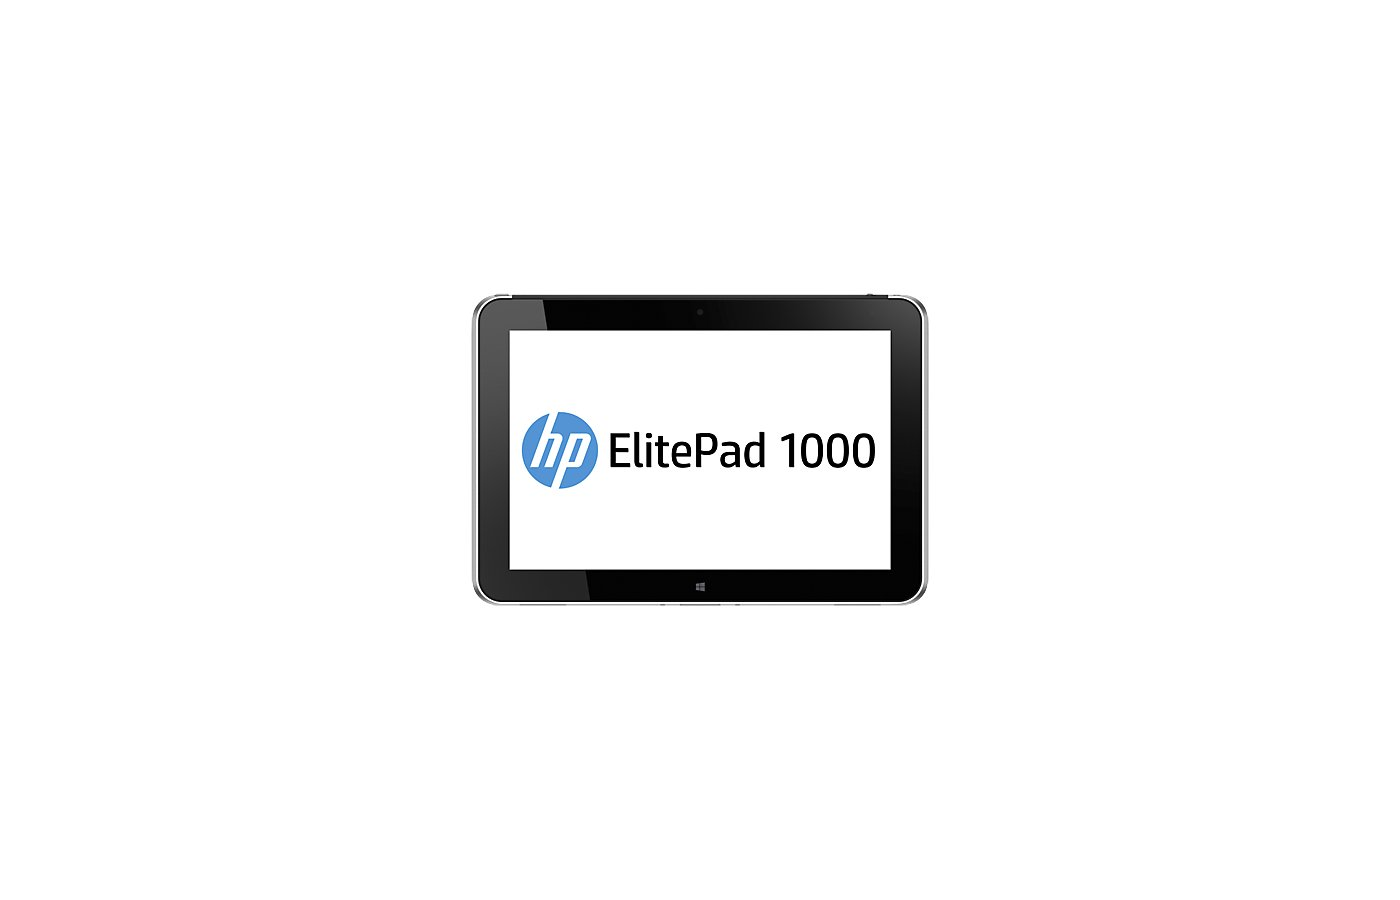 Планшет HP ElitePad 1000 G2 /H9X52EA/